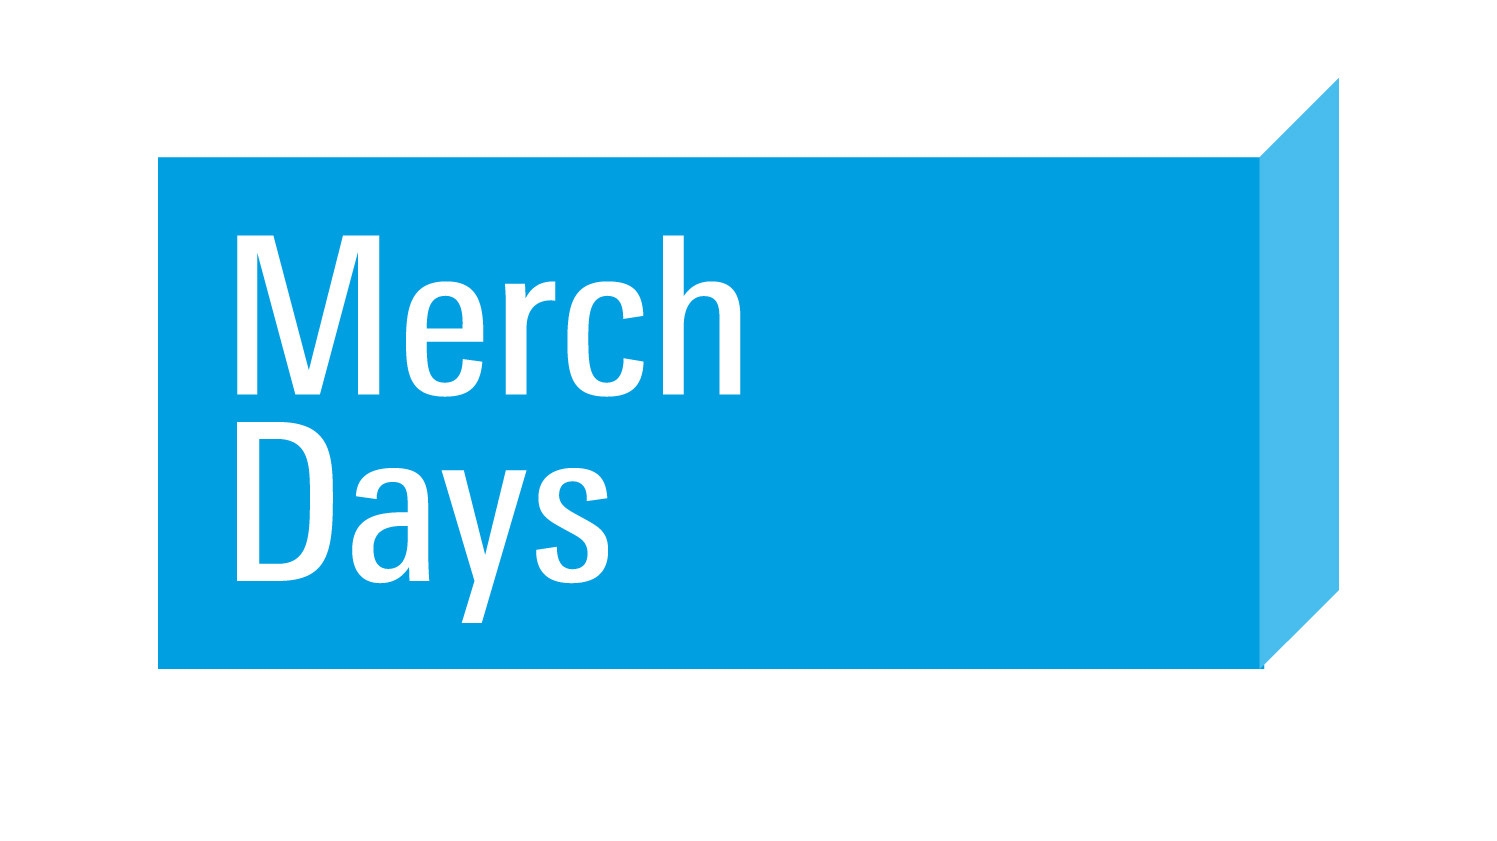 MerchDays Logo